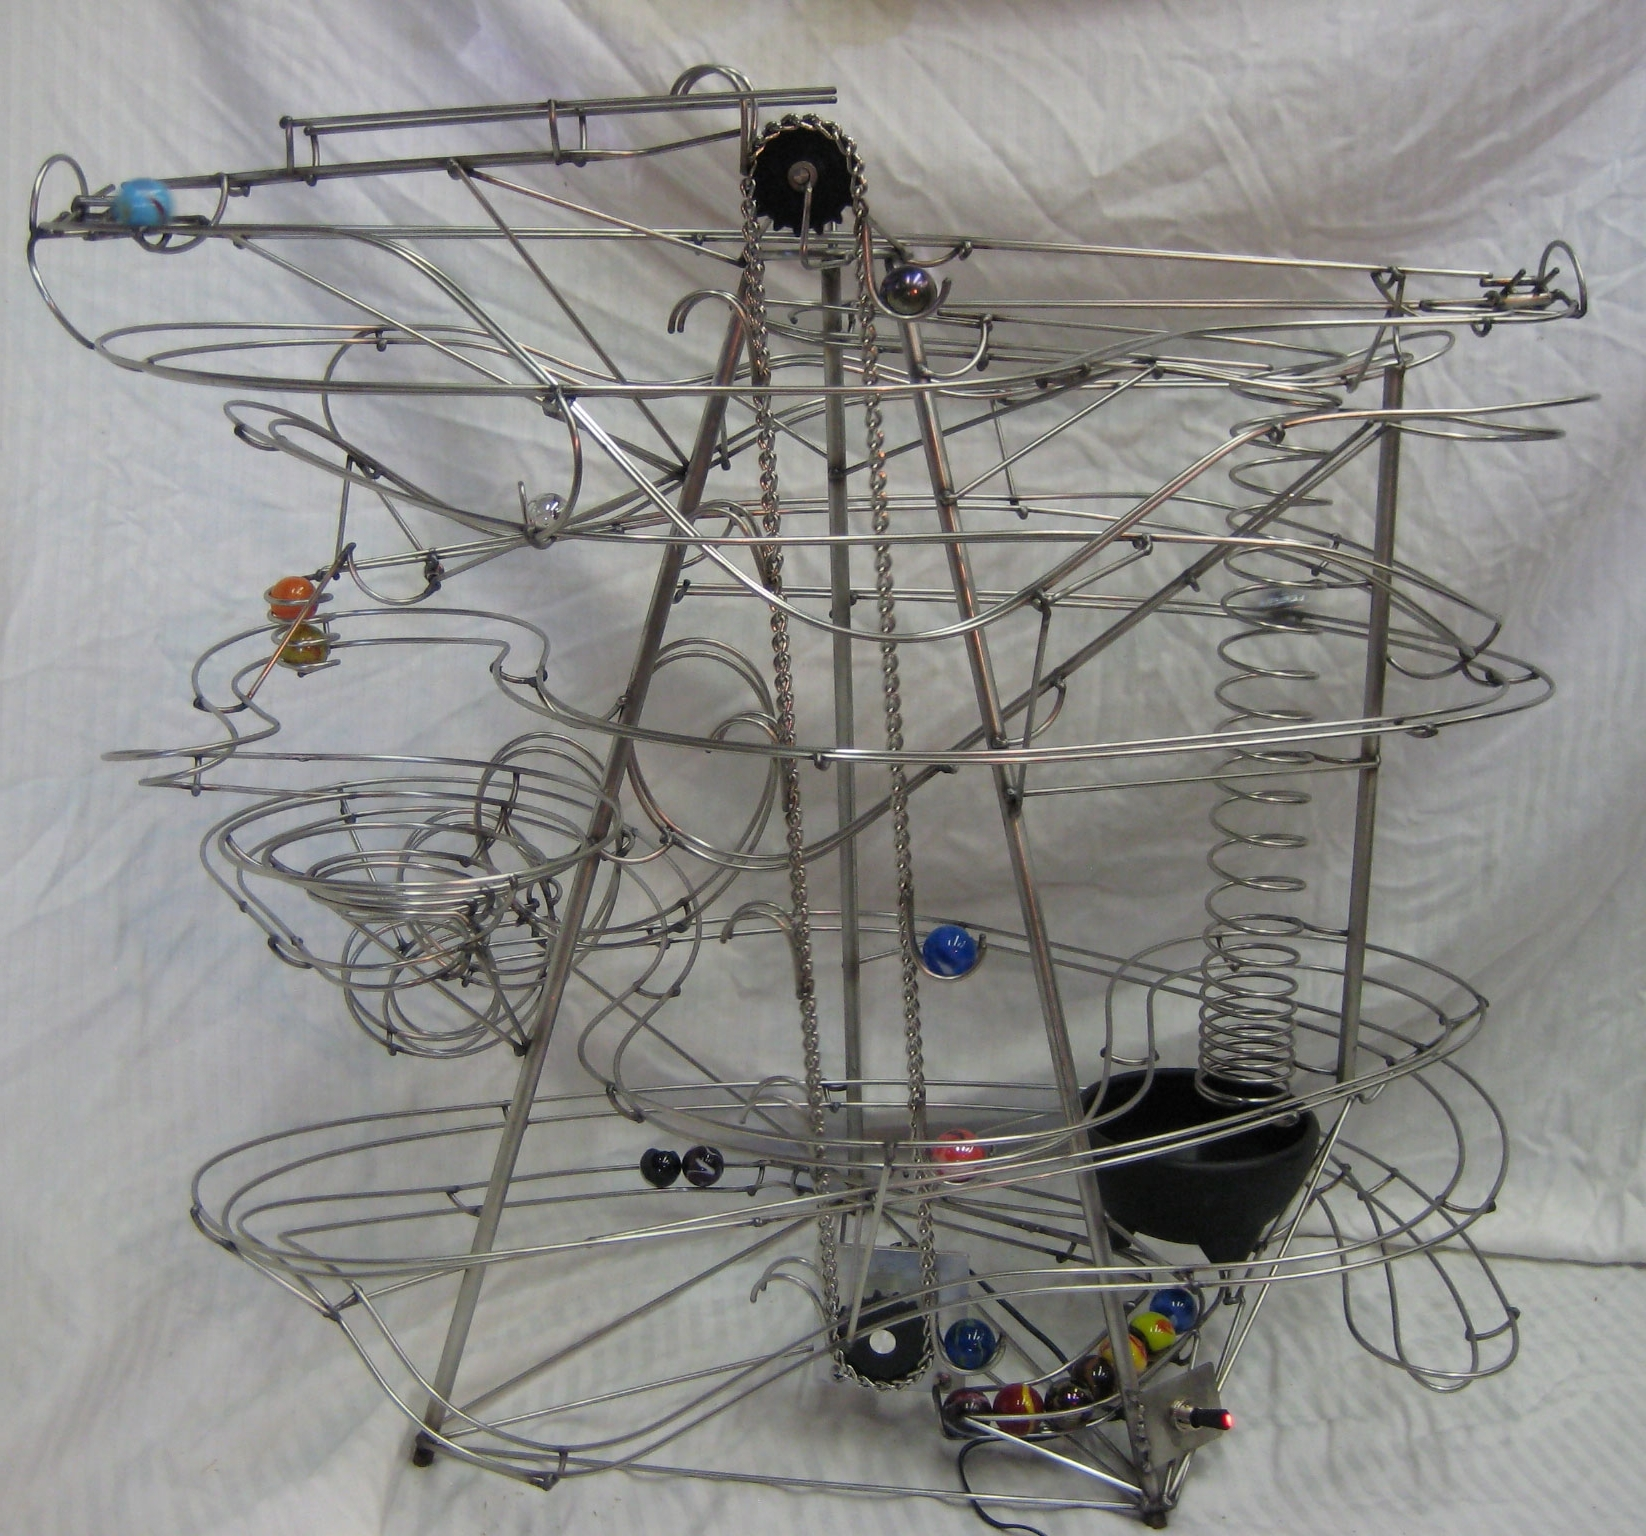 Rollingballsculpture – Captures The Intended For Kinetic Wall Art (View 12 of 15)